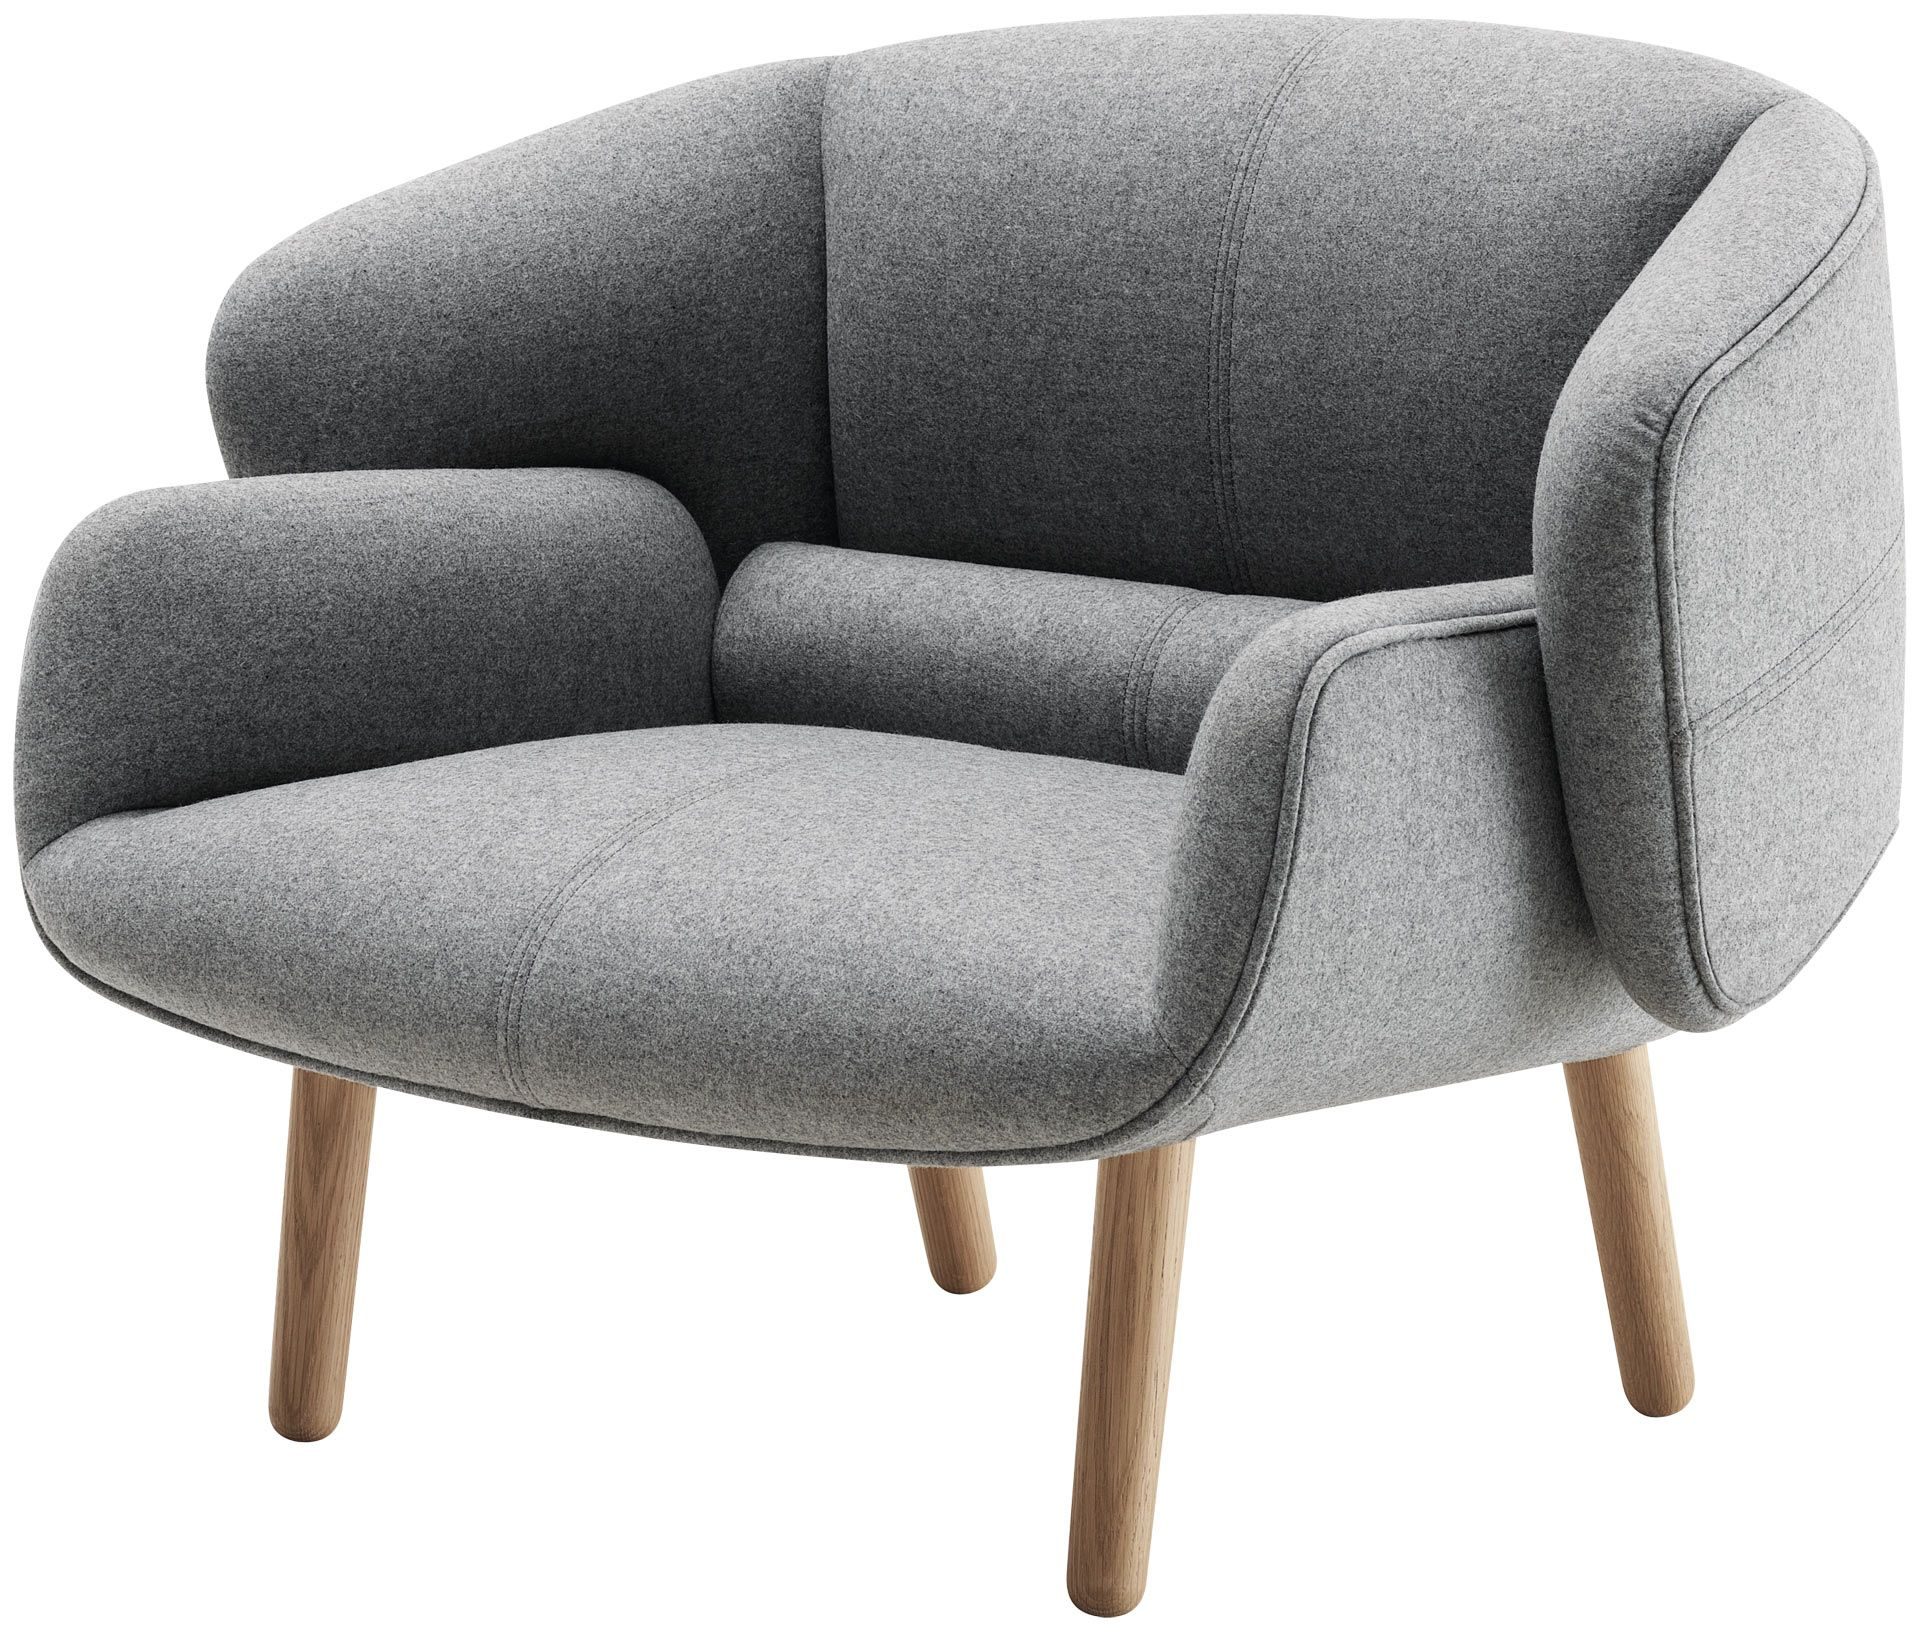 fusion chair by nendo modern armchairs  contemporary armchairs  - fusion chair by nendo modern armchairs  contemporary armchairs  boconcept